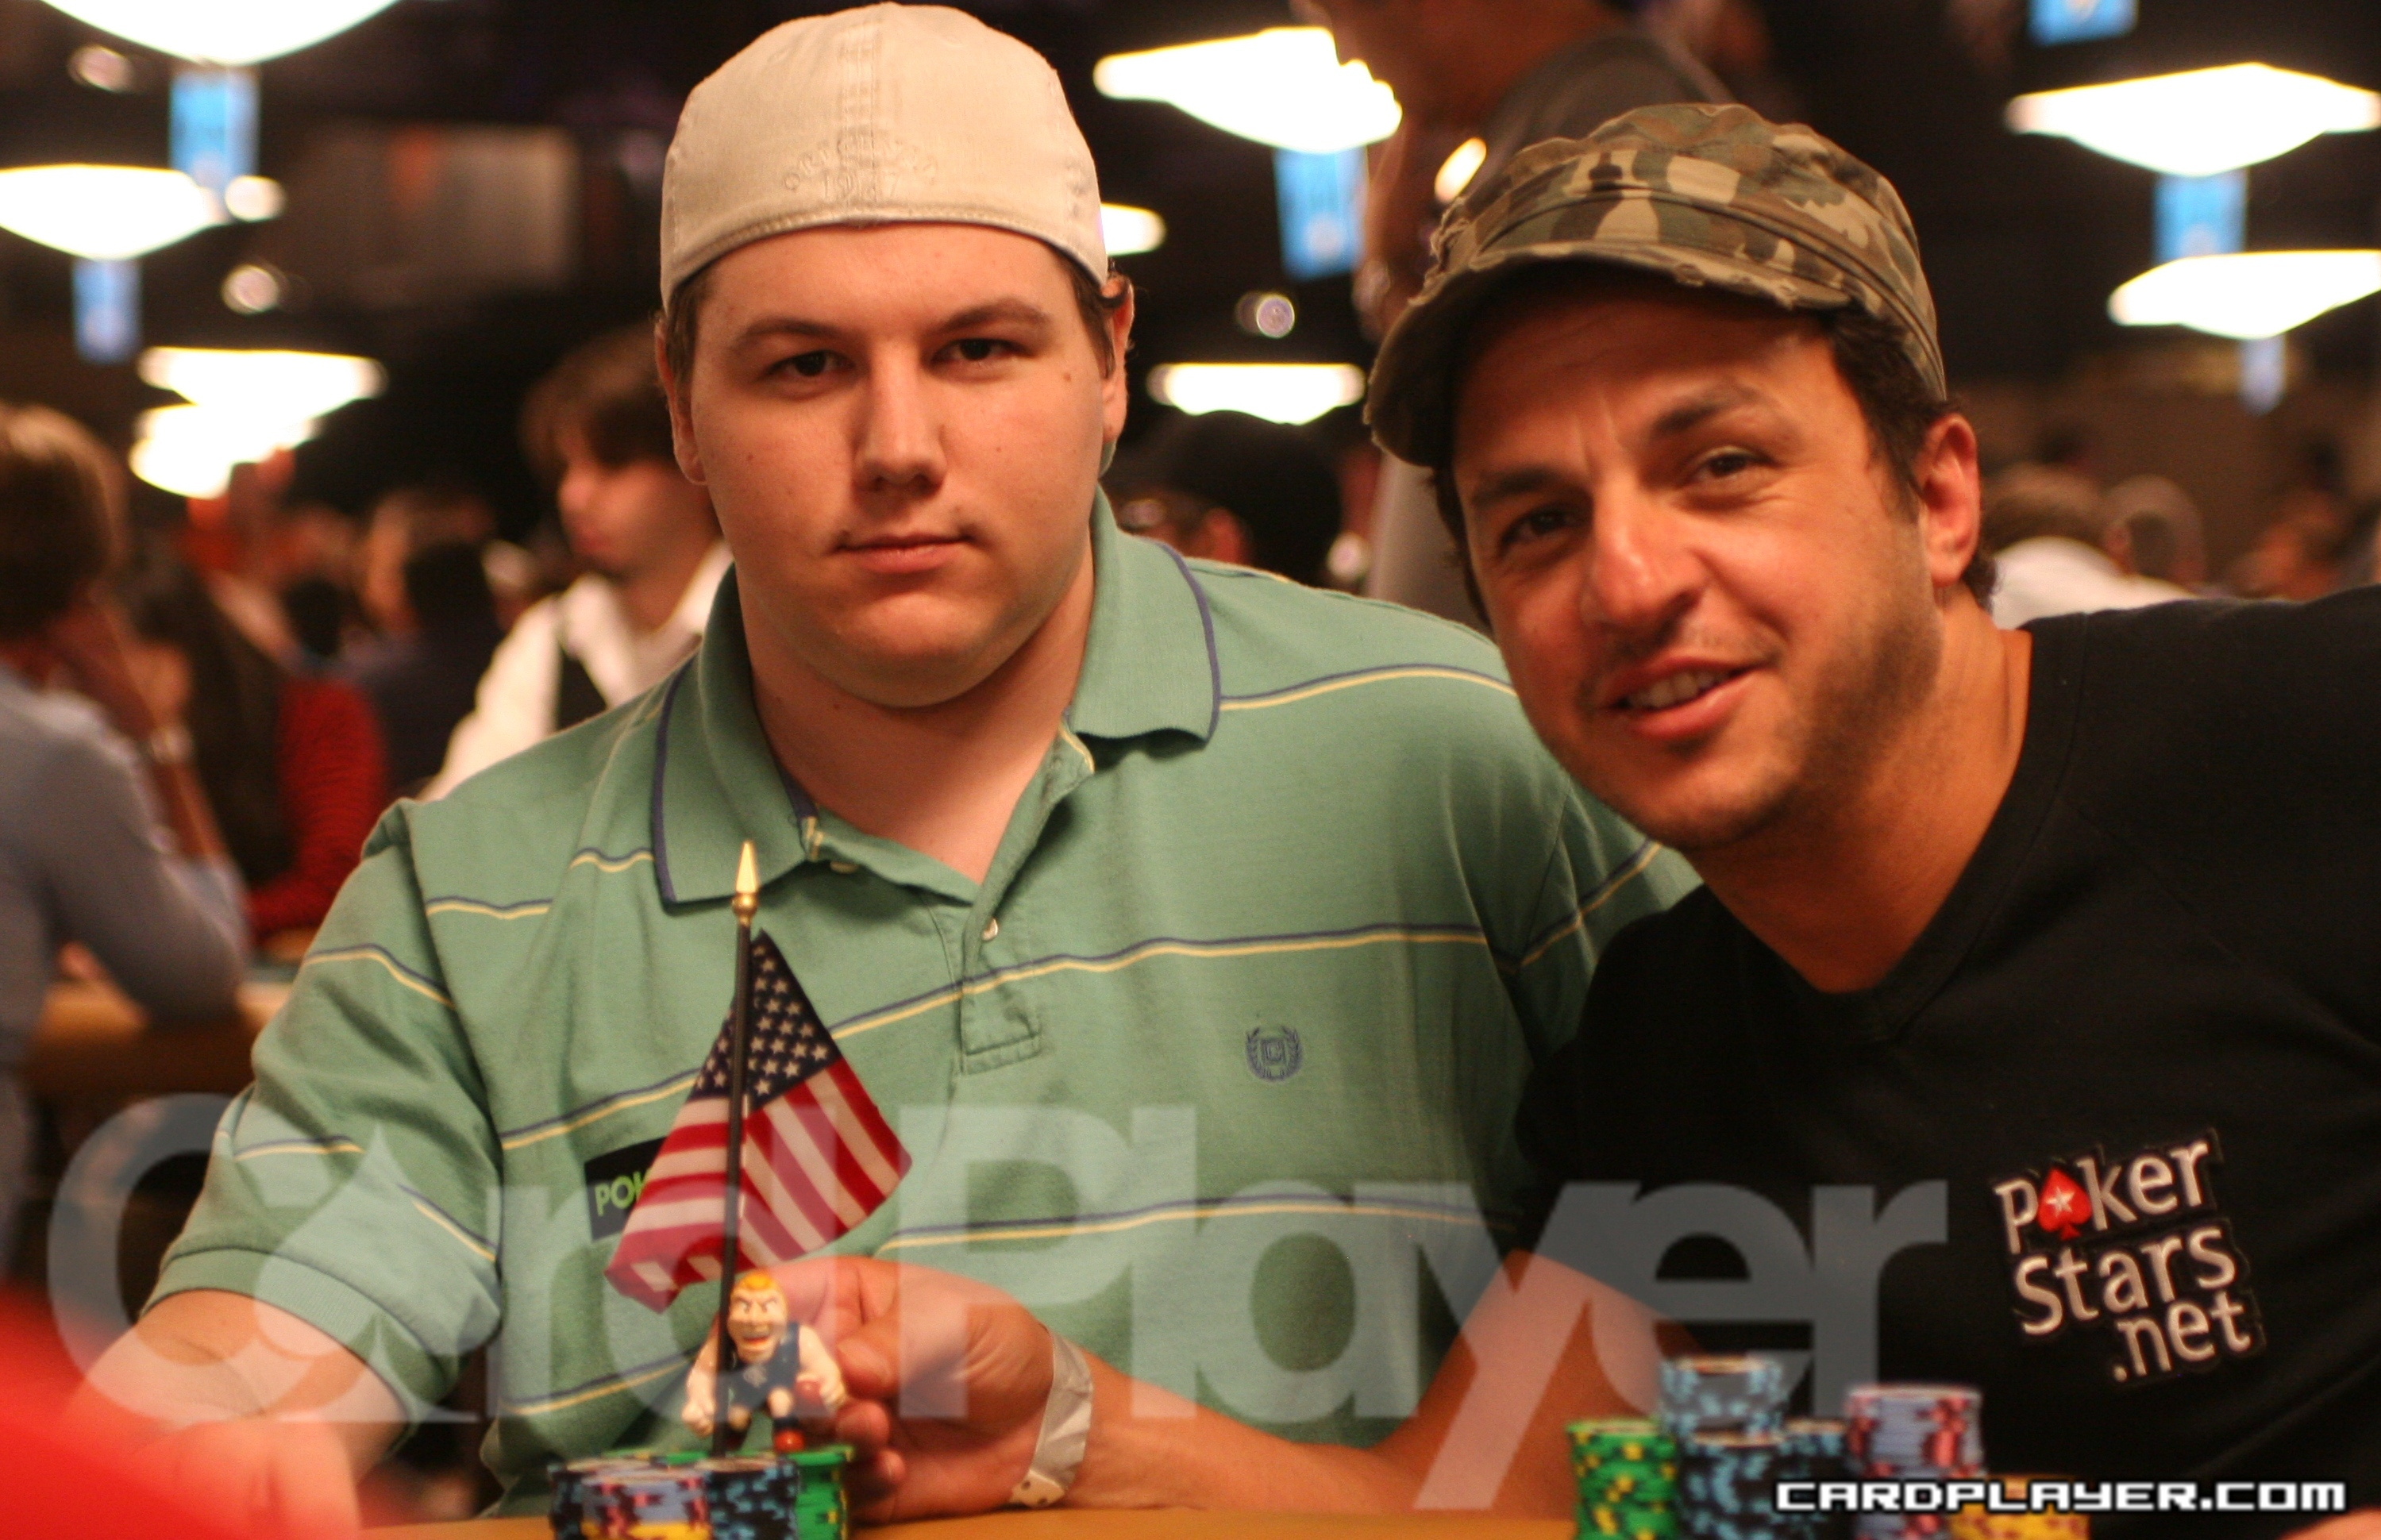 Shaun Deeb and Tony Hachem Represent The Poker Melting Pot